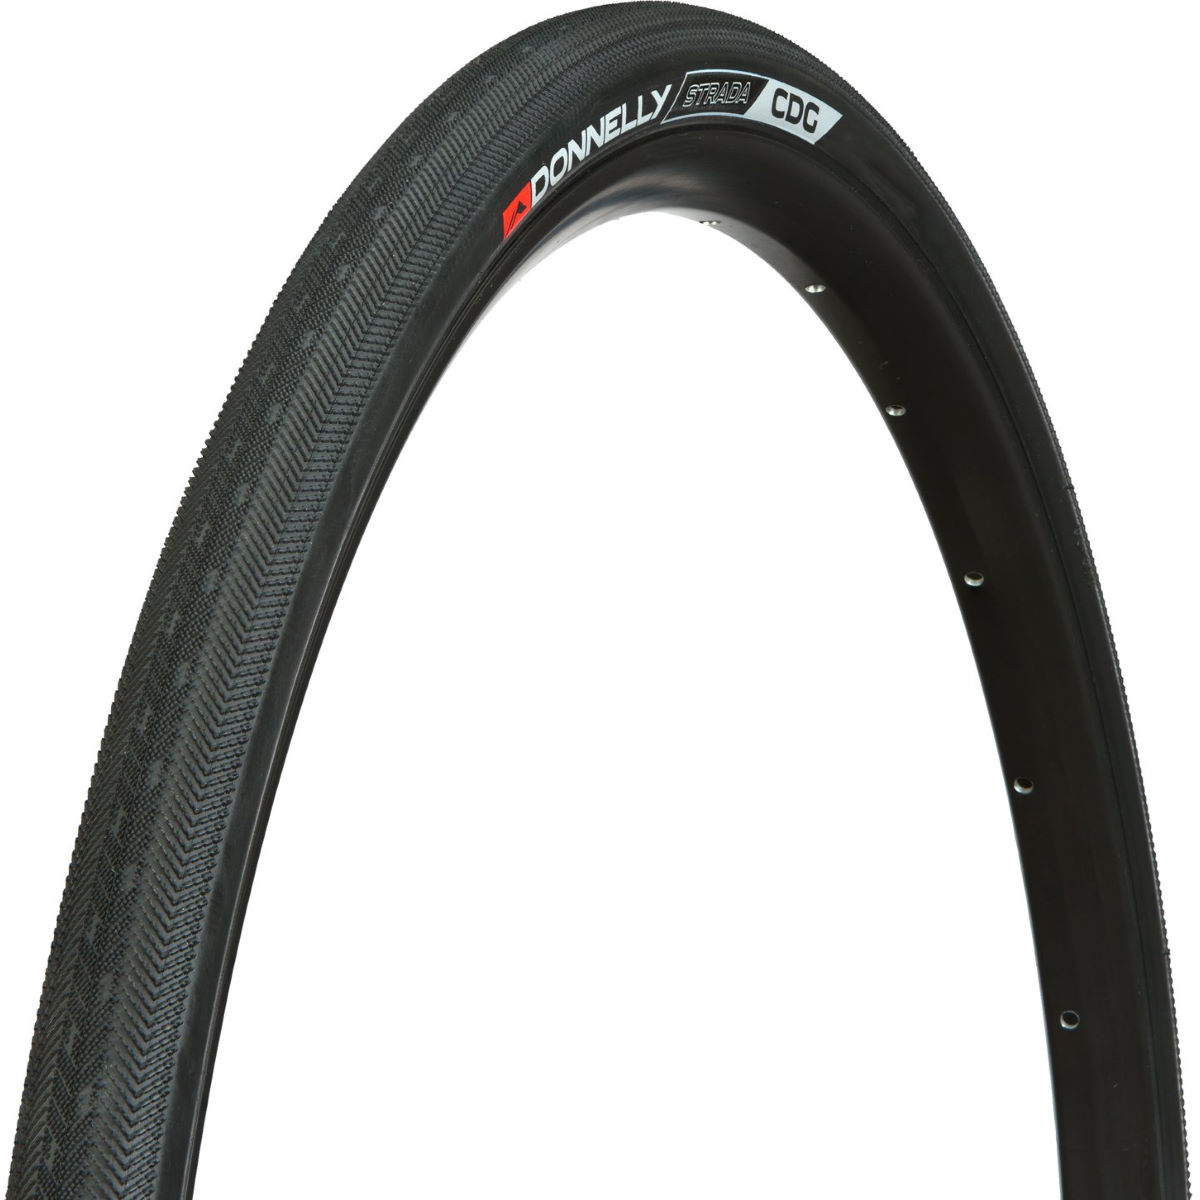 Donnelly Donnelly Strada CDG Tubeless SC Road Tyre   Tyres